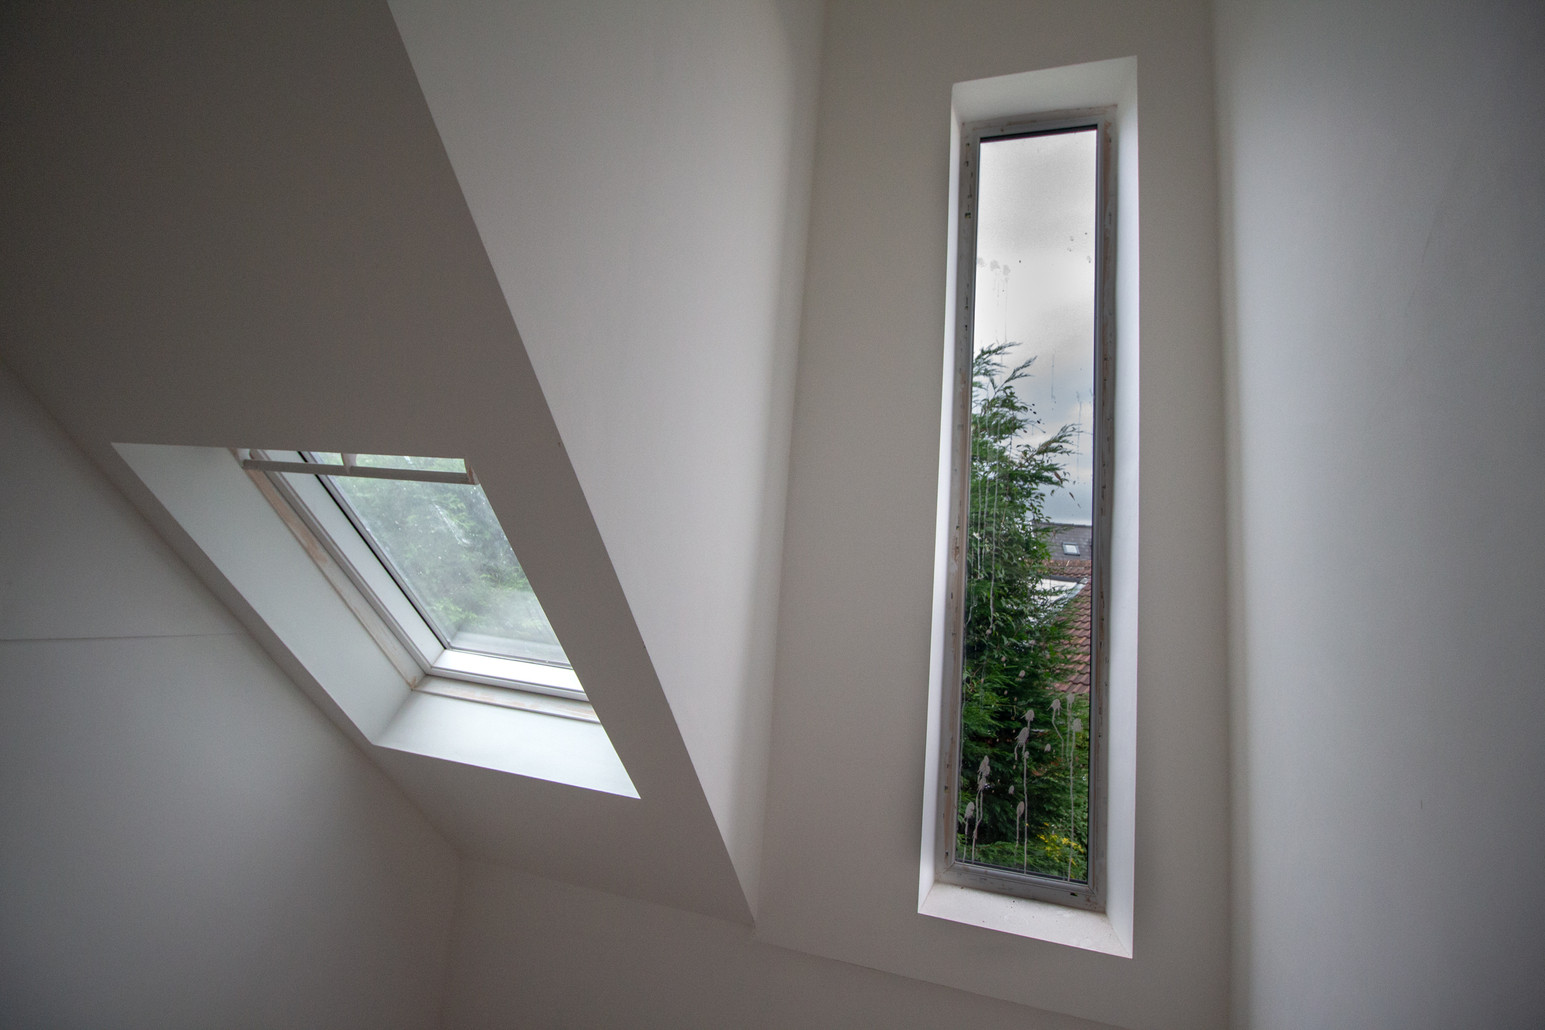 Dormer window and rooflight detail